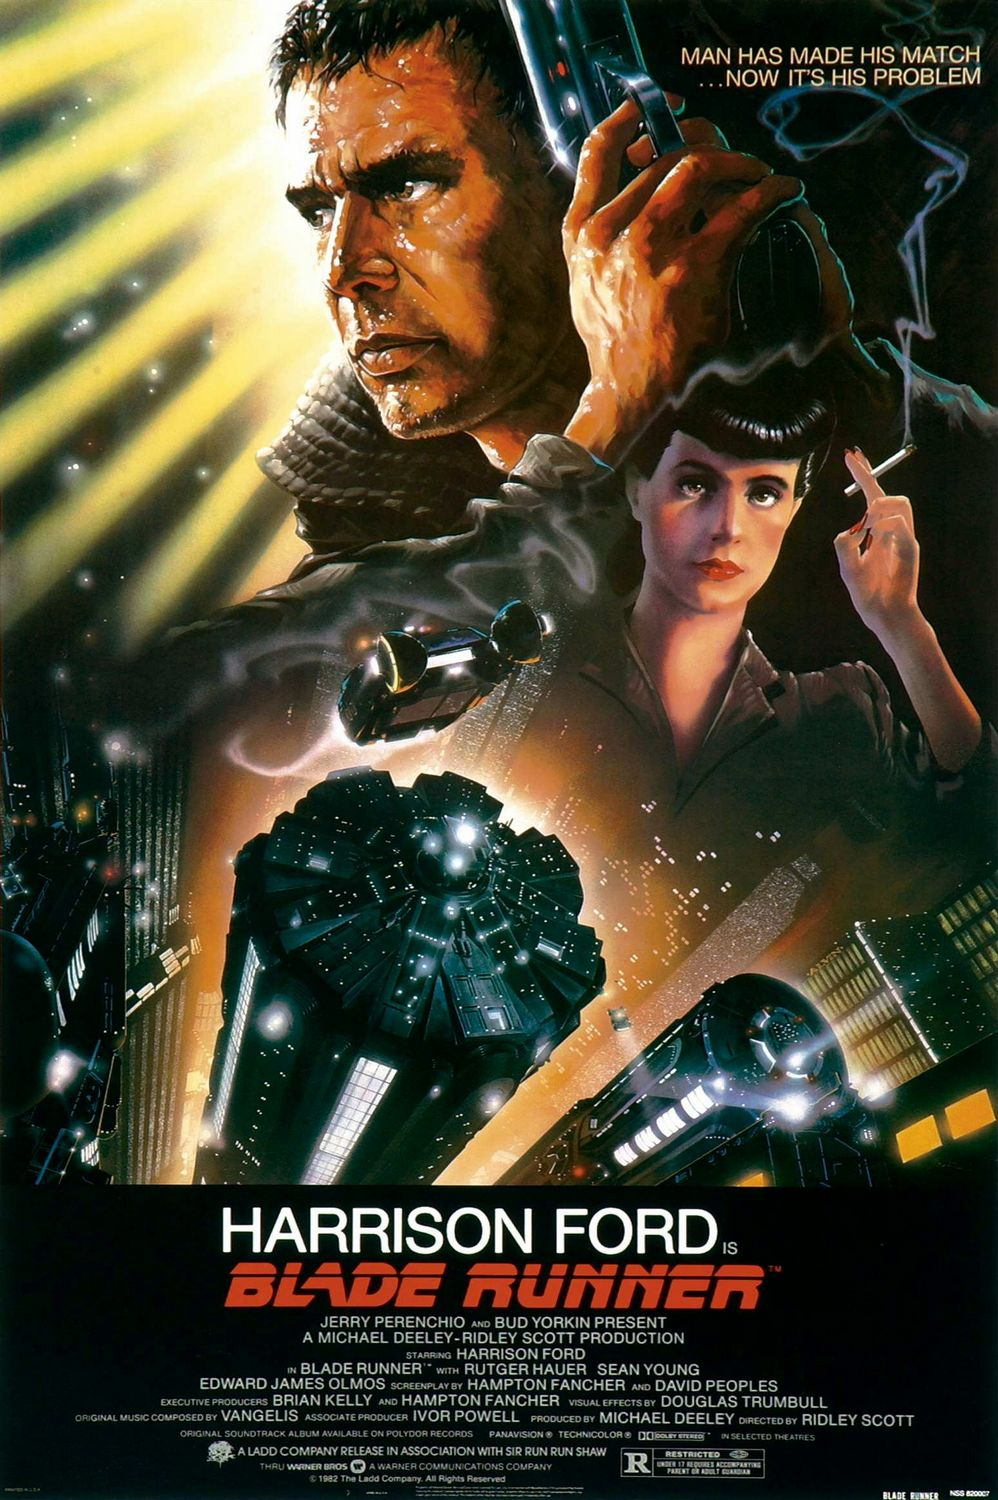 Blade Runner (US Theatrical Cut) Poster.jpg